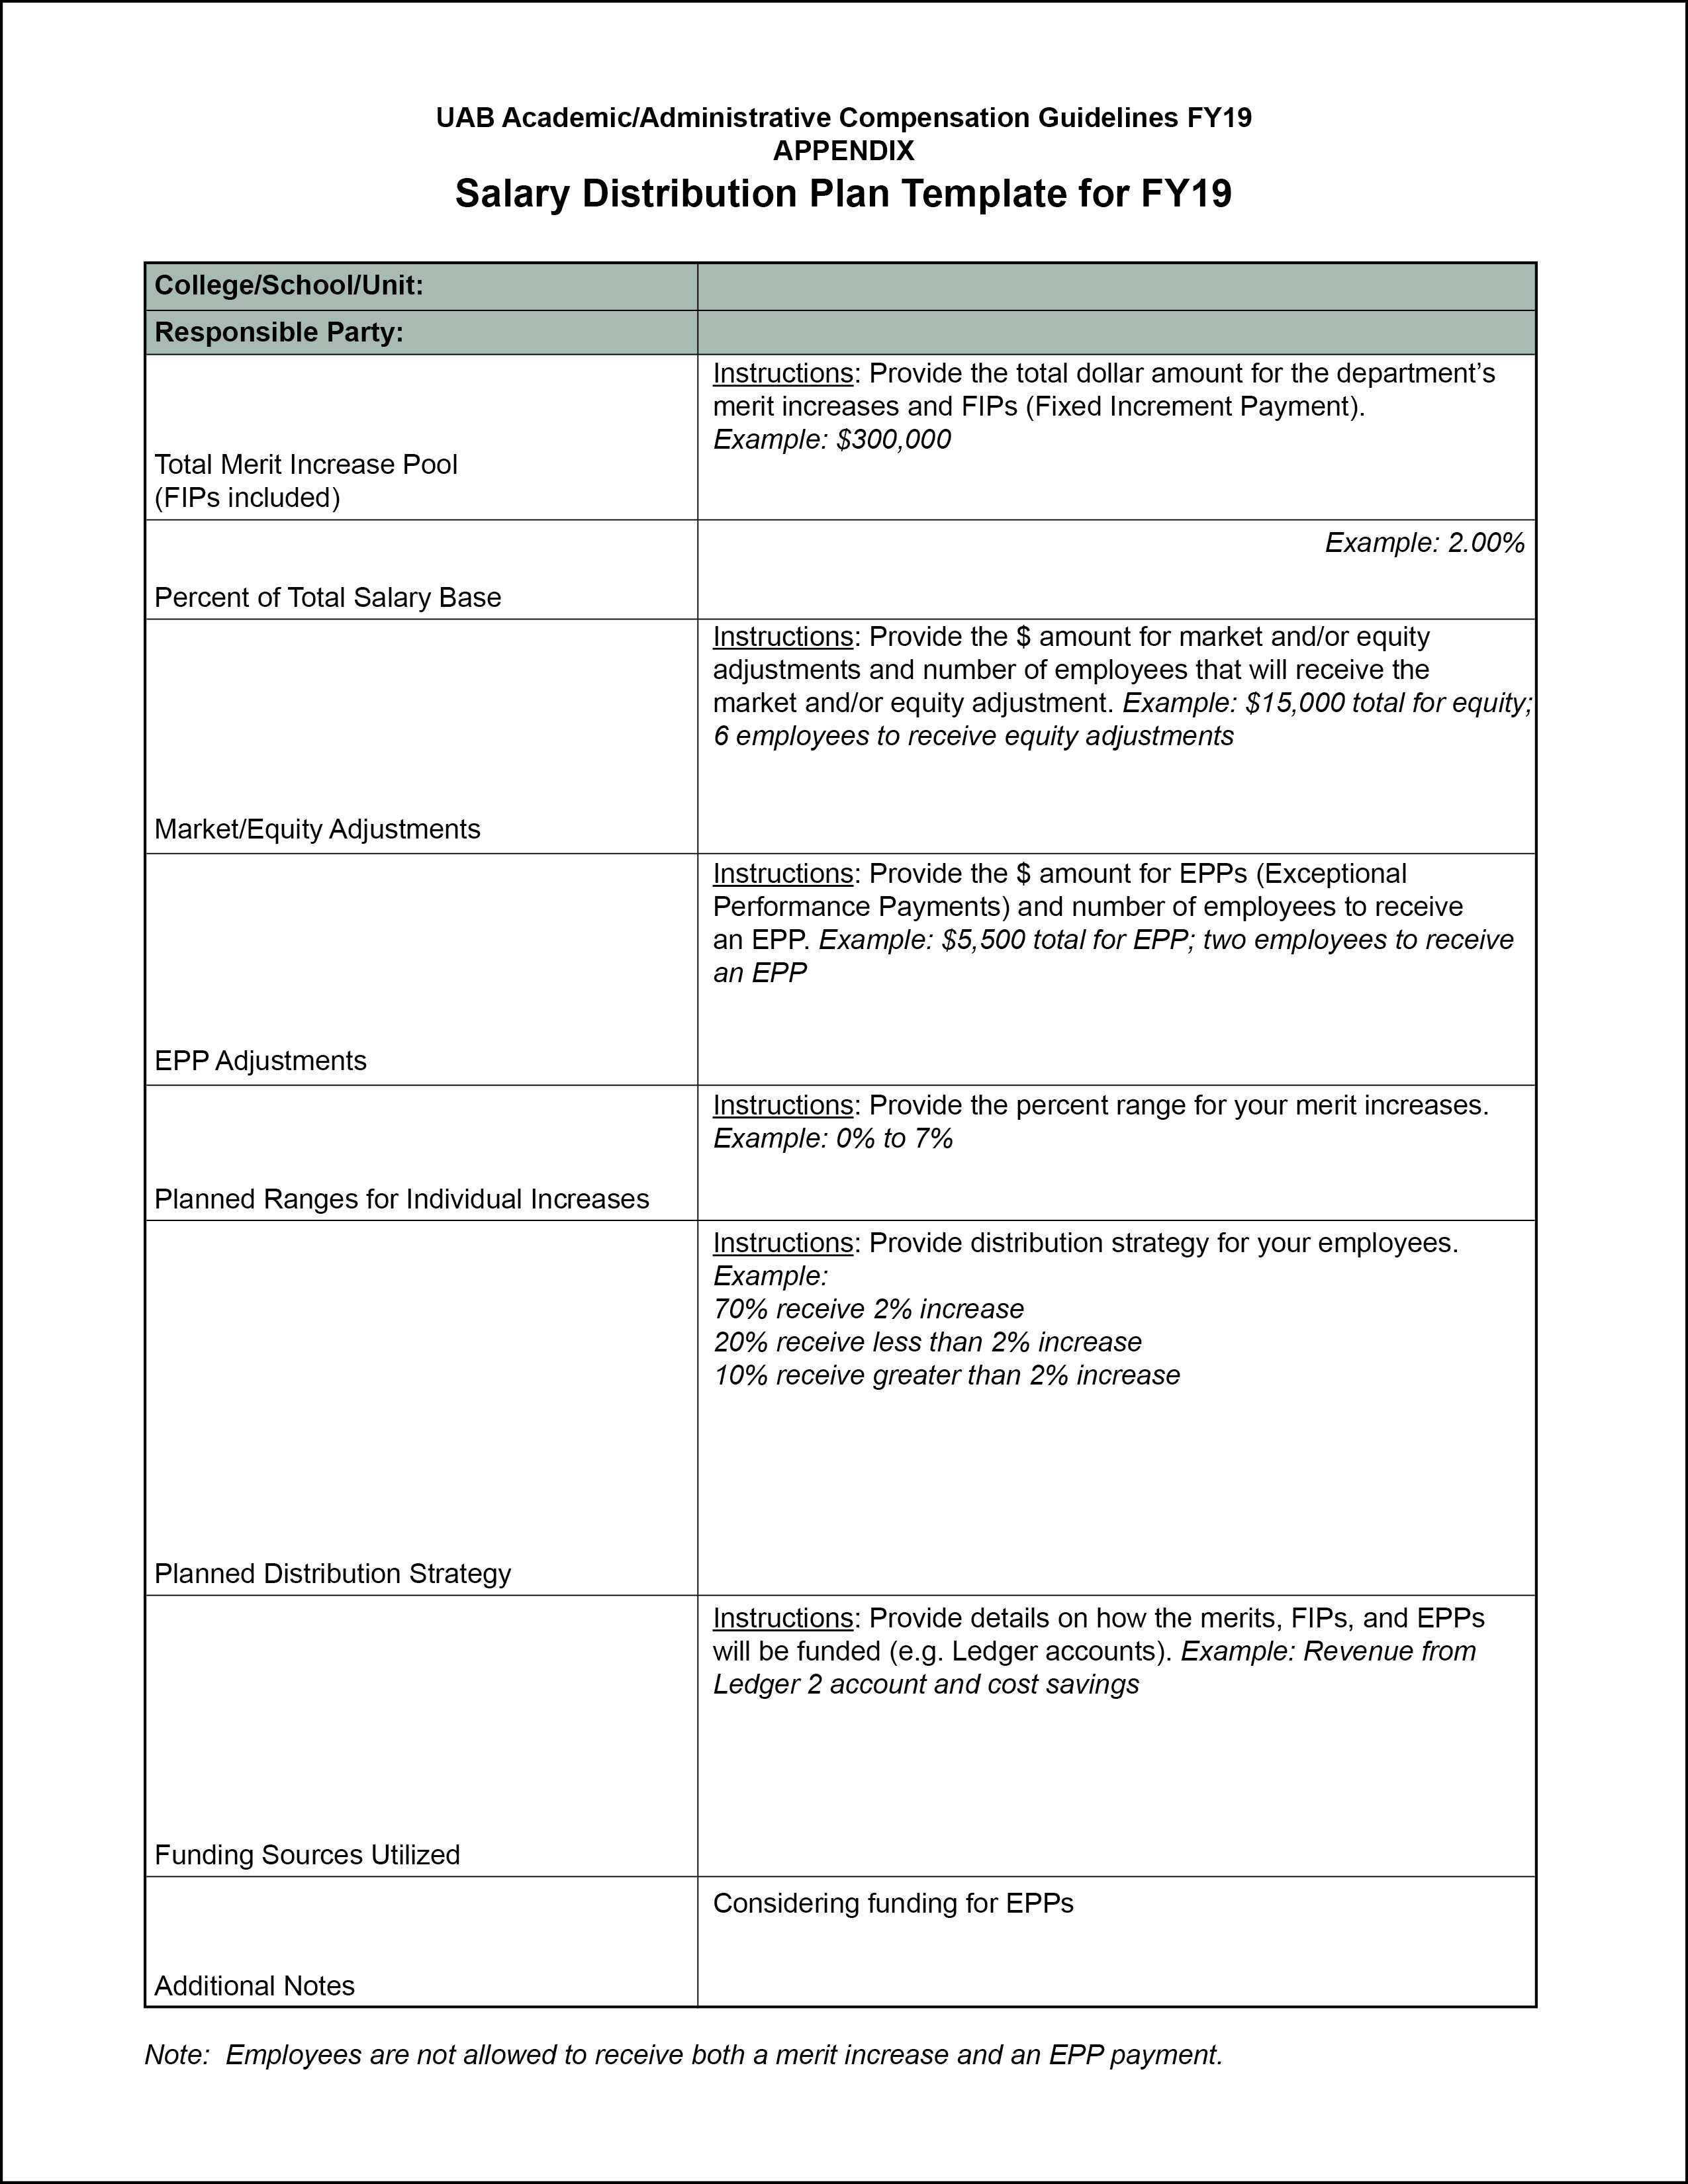 Uab human resources compensation guidelines appendix salary distribution plan template for fy19 posted 6272018 maxwellsz